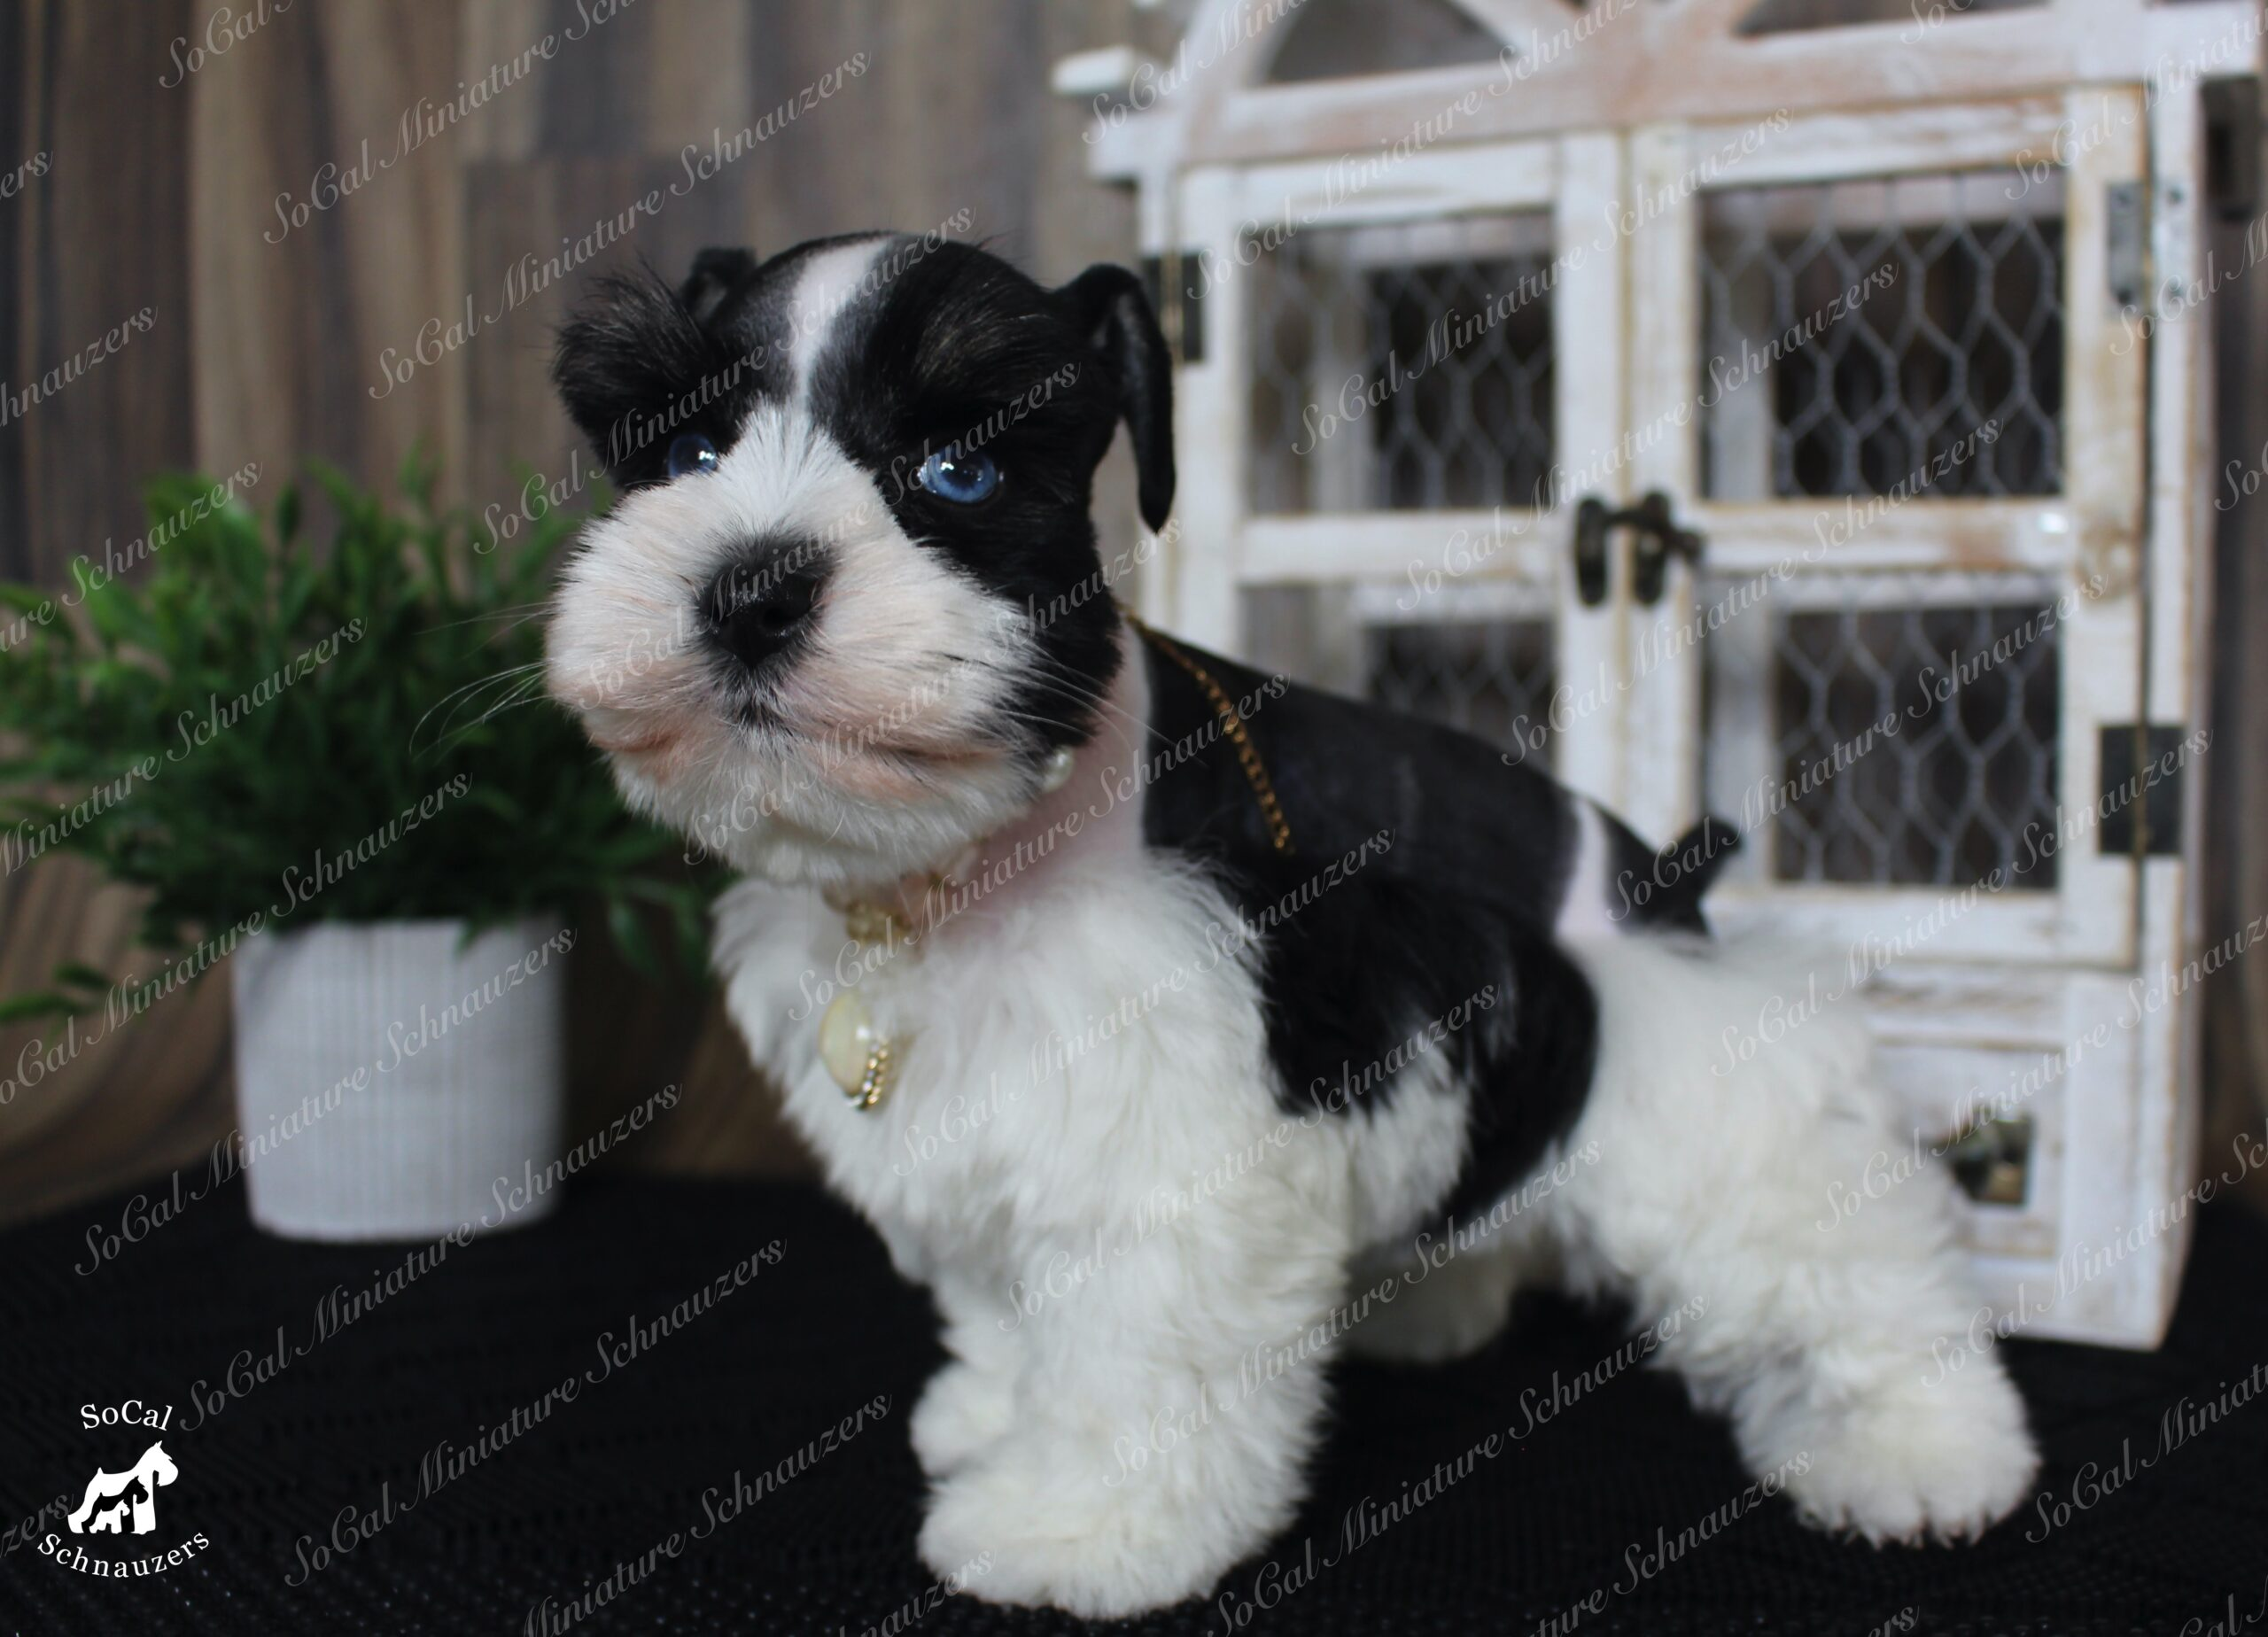 Fluffy black and white Schnauzer with gold necklace